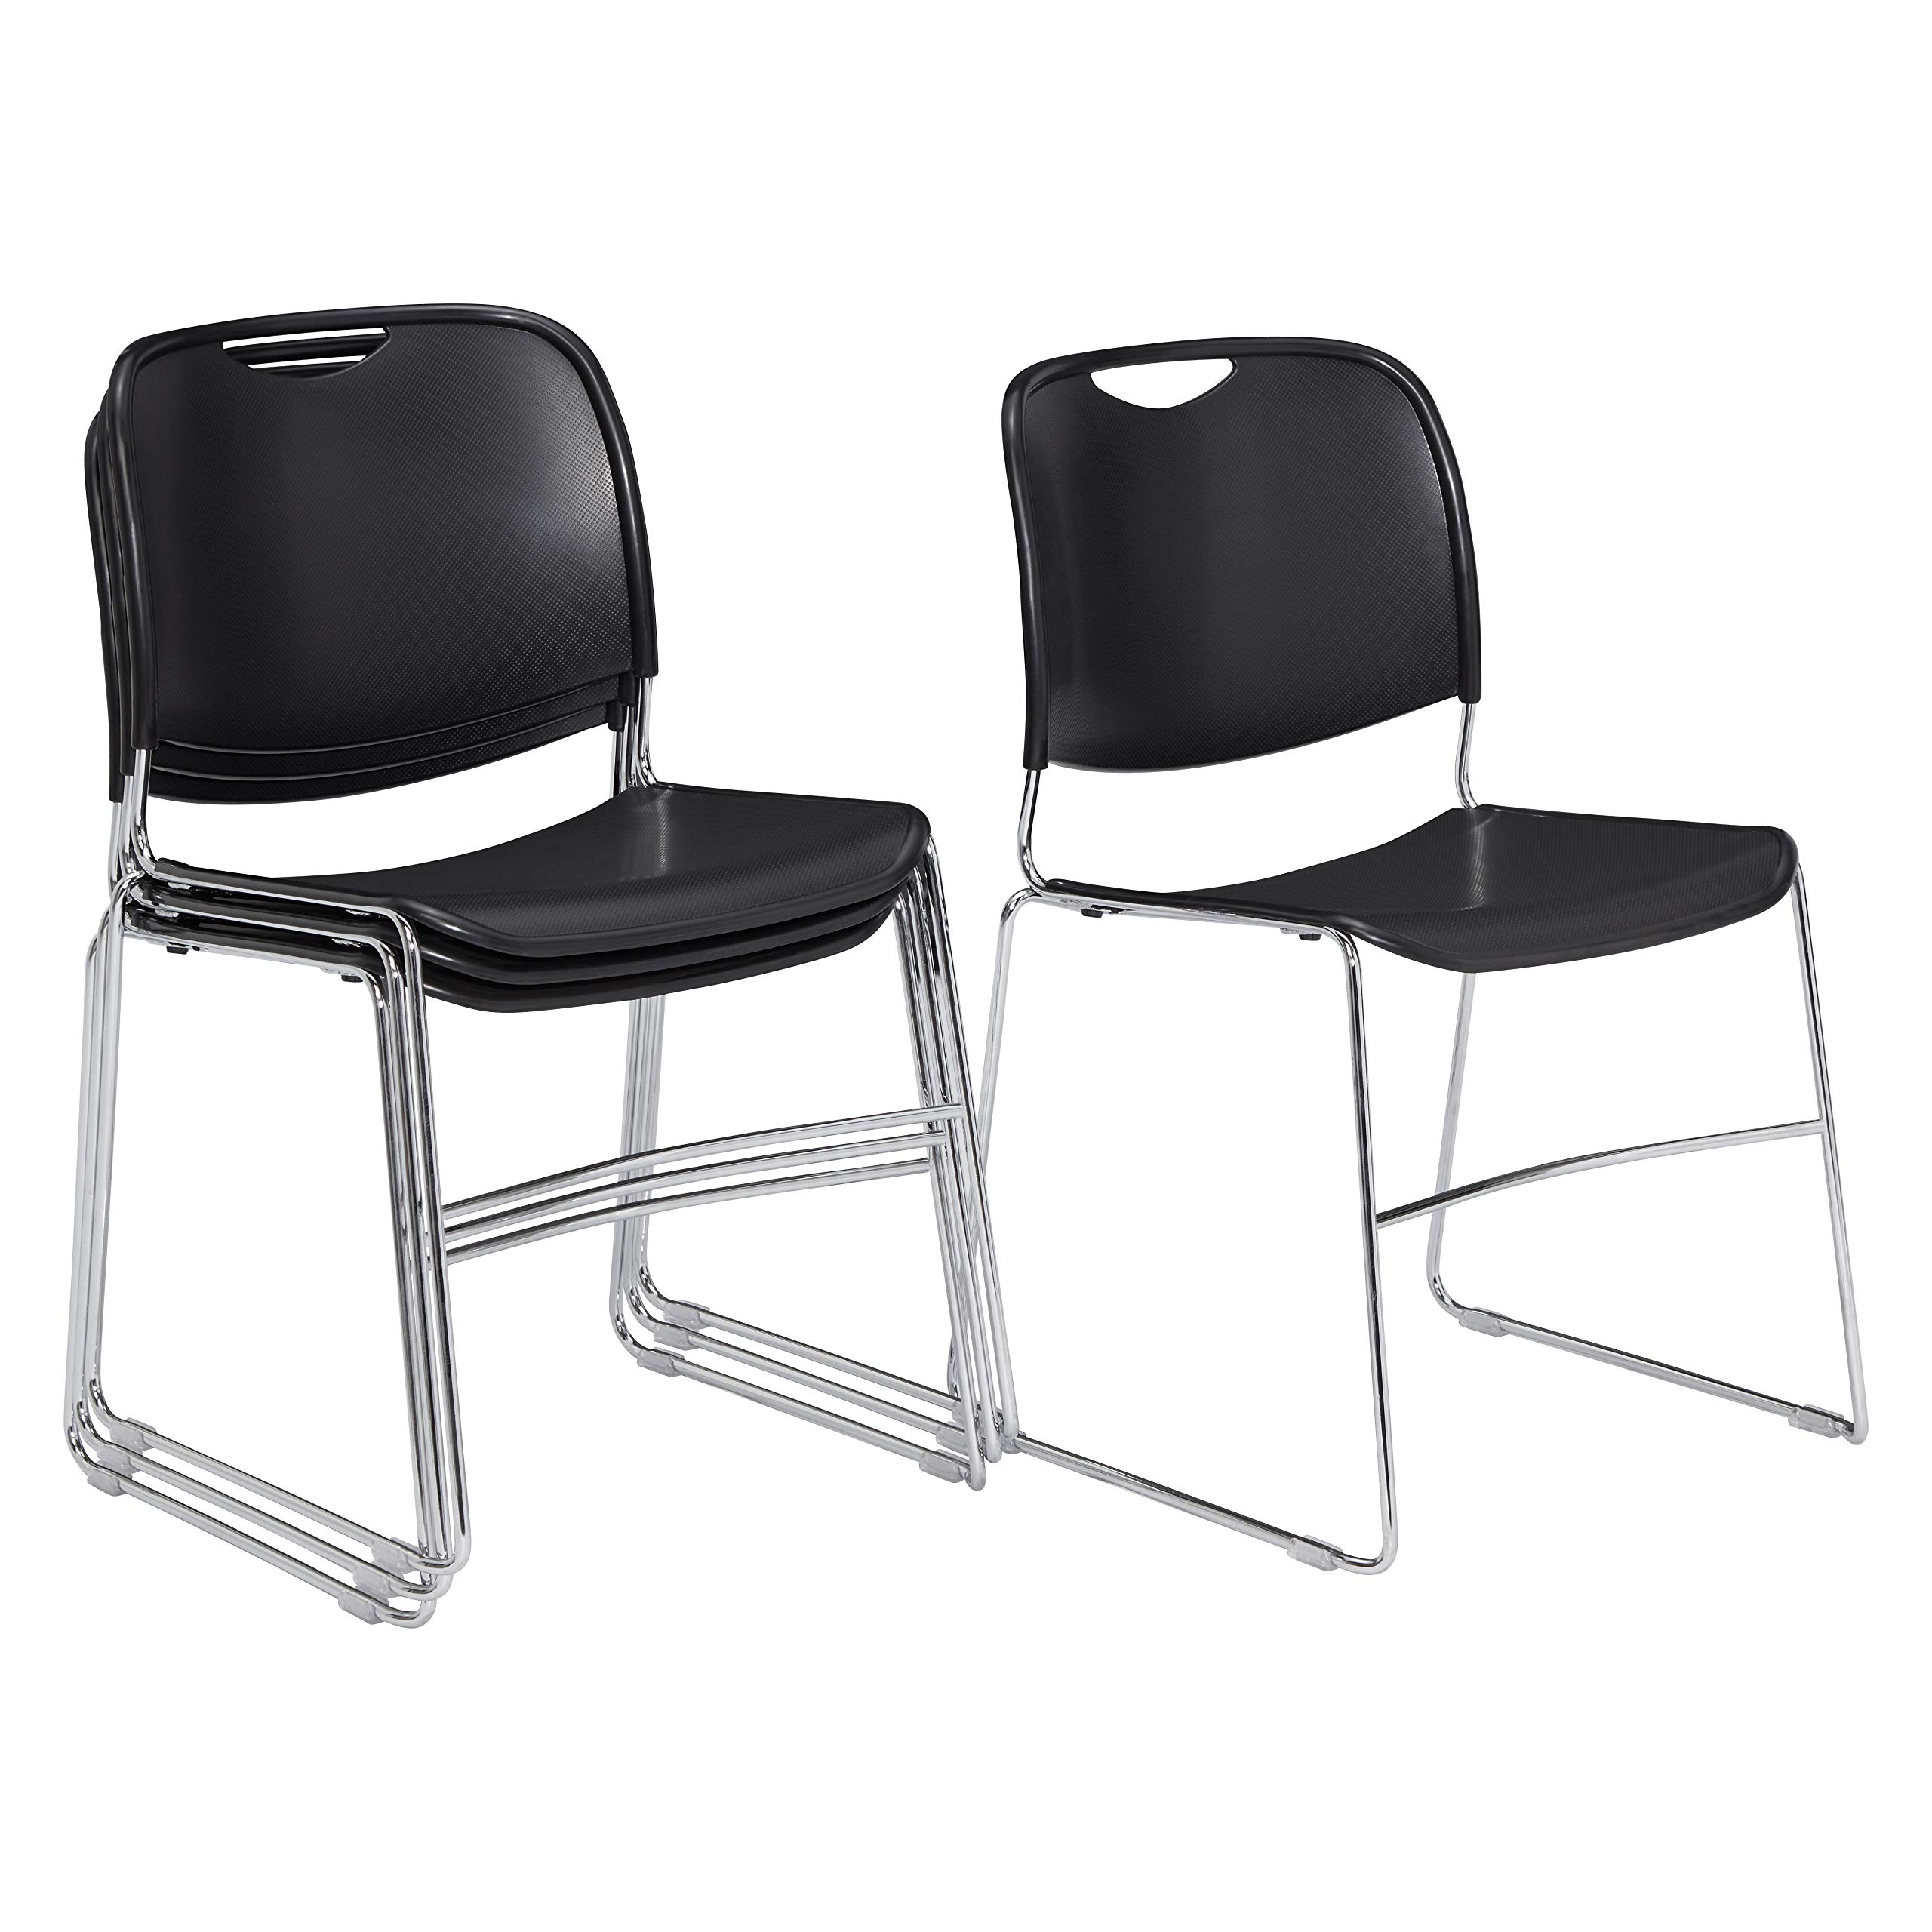 (4 Pack) National Public Seating 8500 Series Ultra-Compact Plastic Stack Chair, Black by National Public Seating